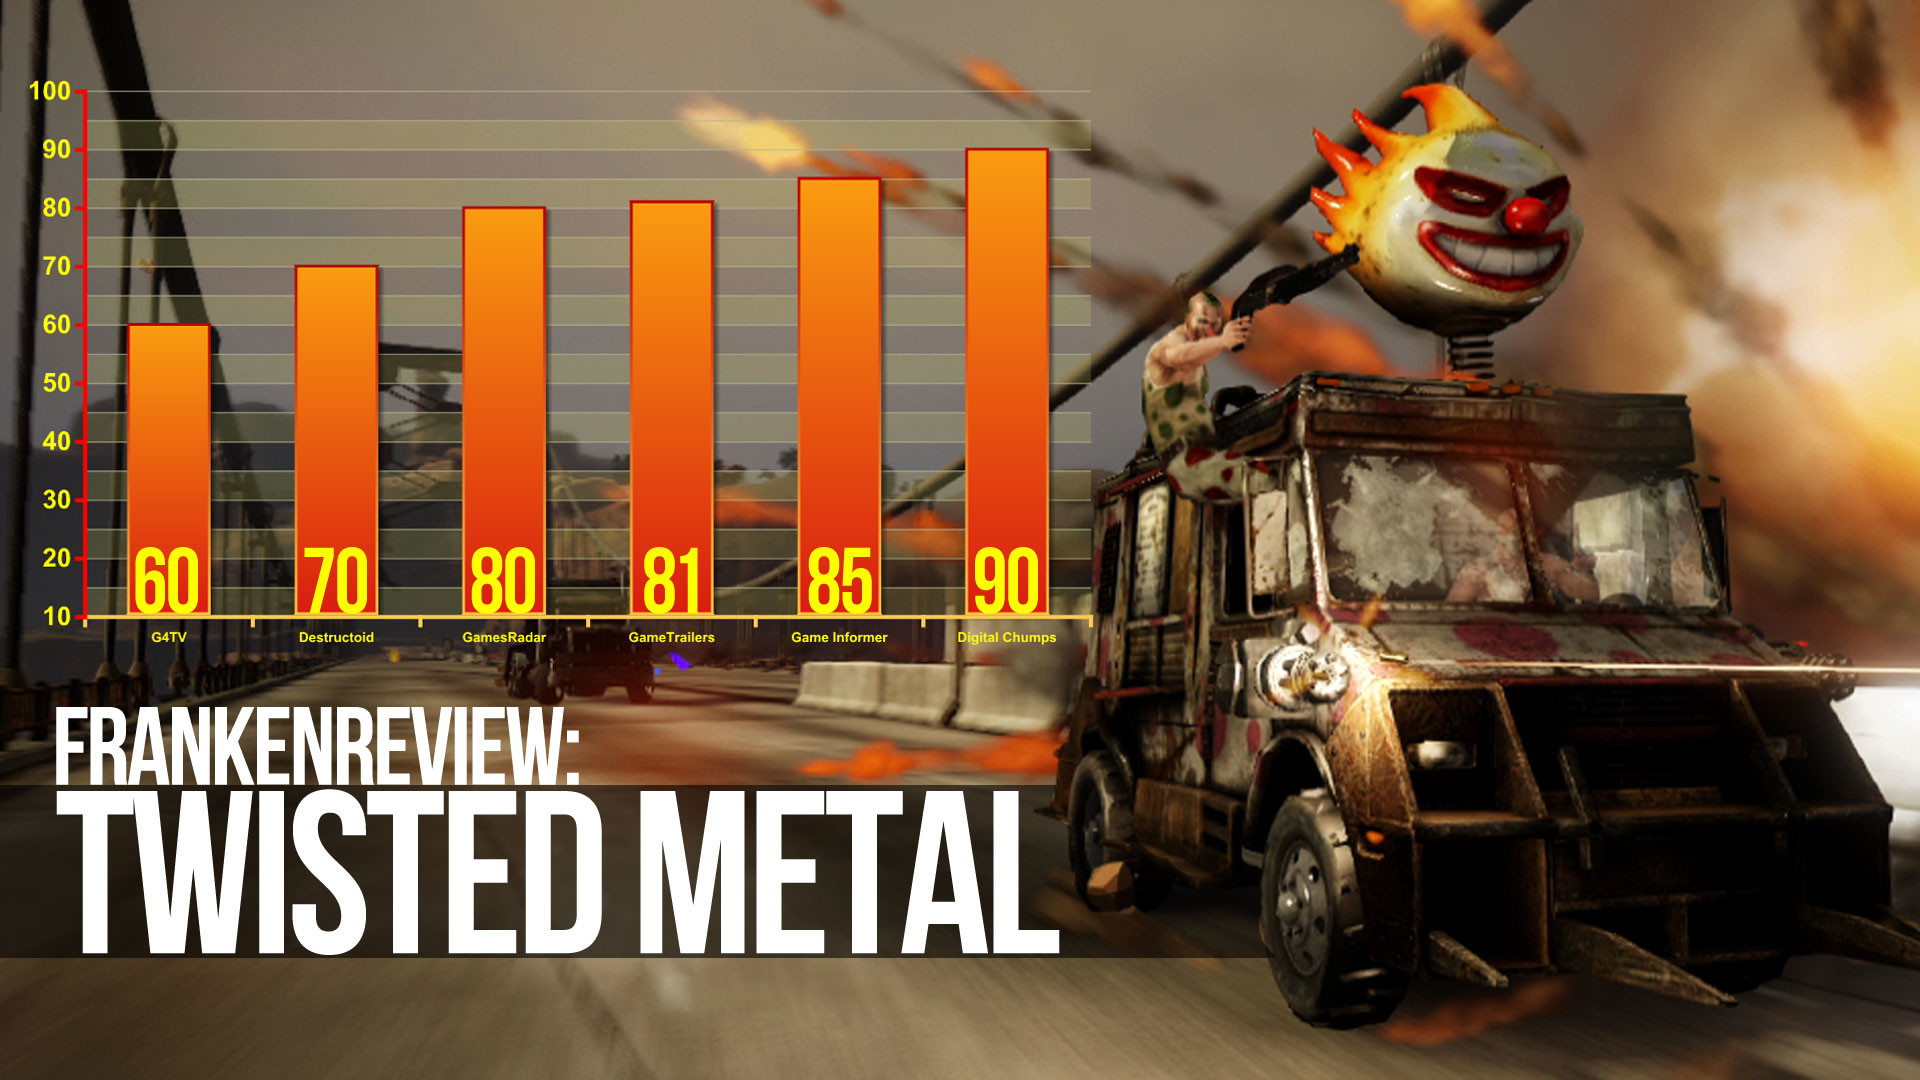 1920x1080 Twisted Metal Sets Game Critic's Skulls Aflame